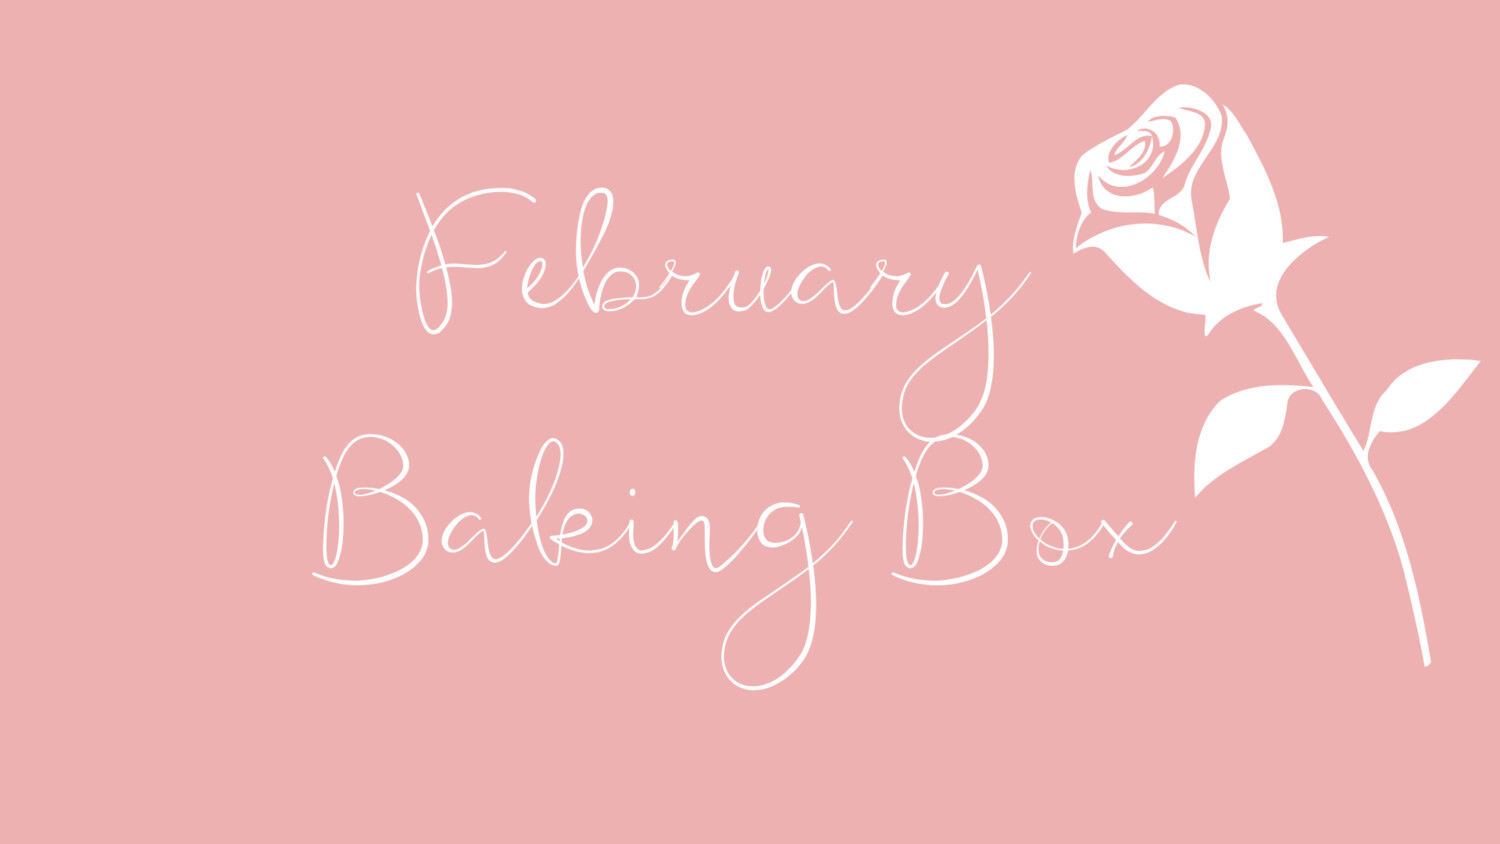 Monthly Baking Box (February Box) One-off box purchase